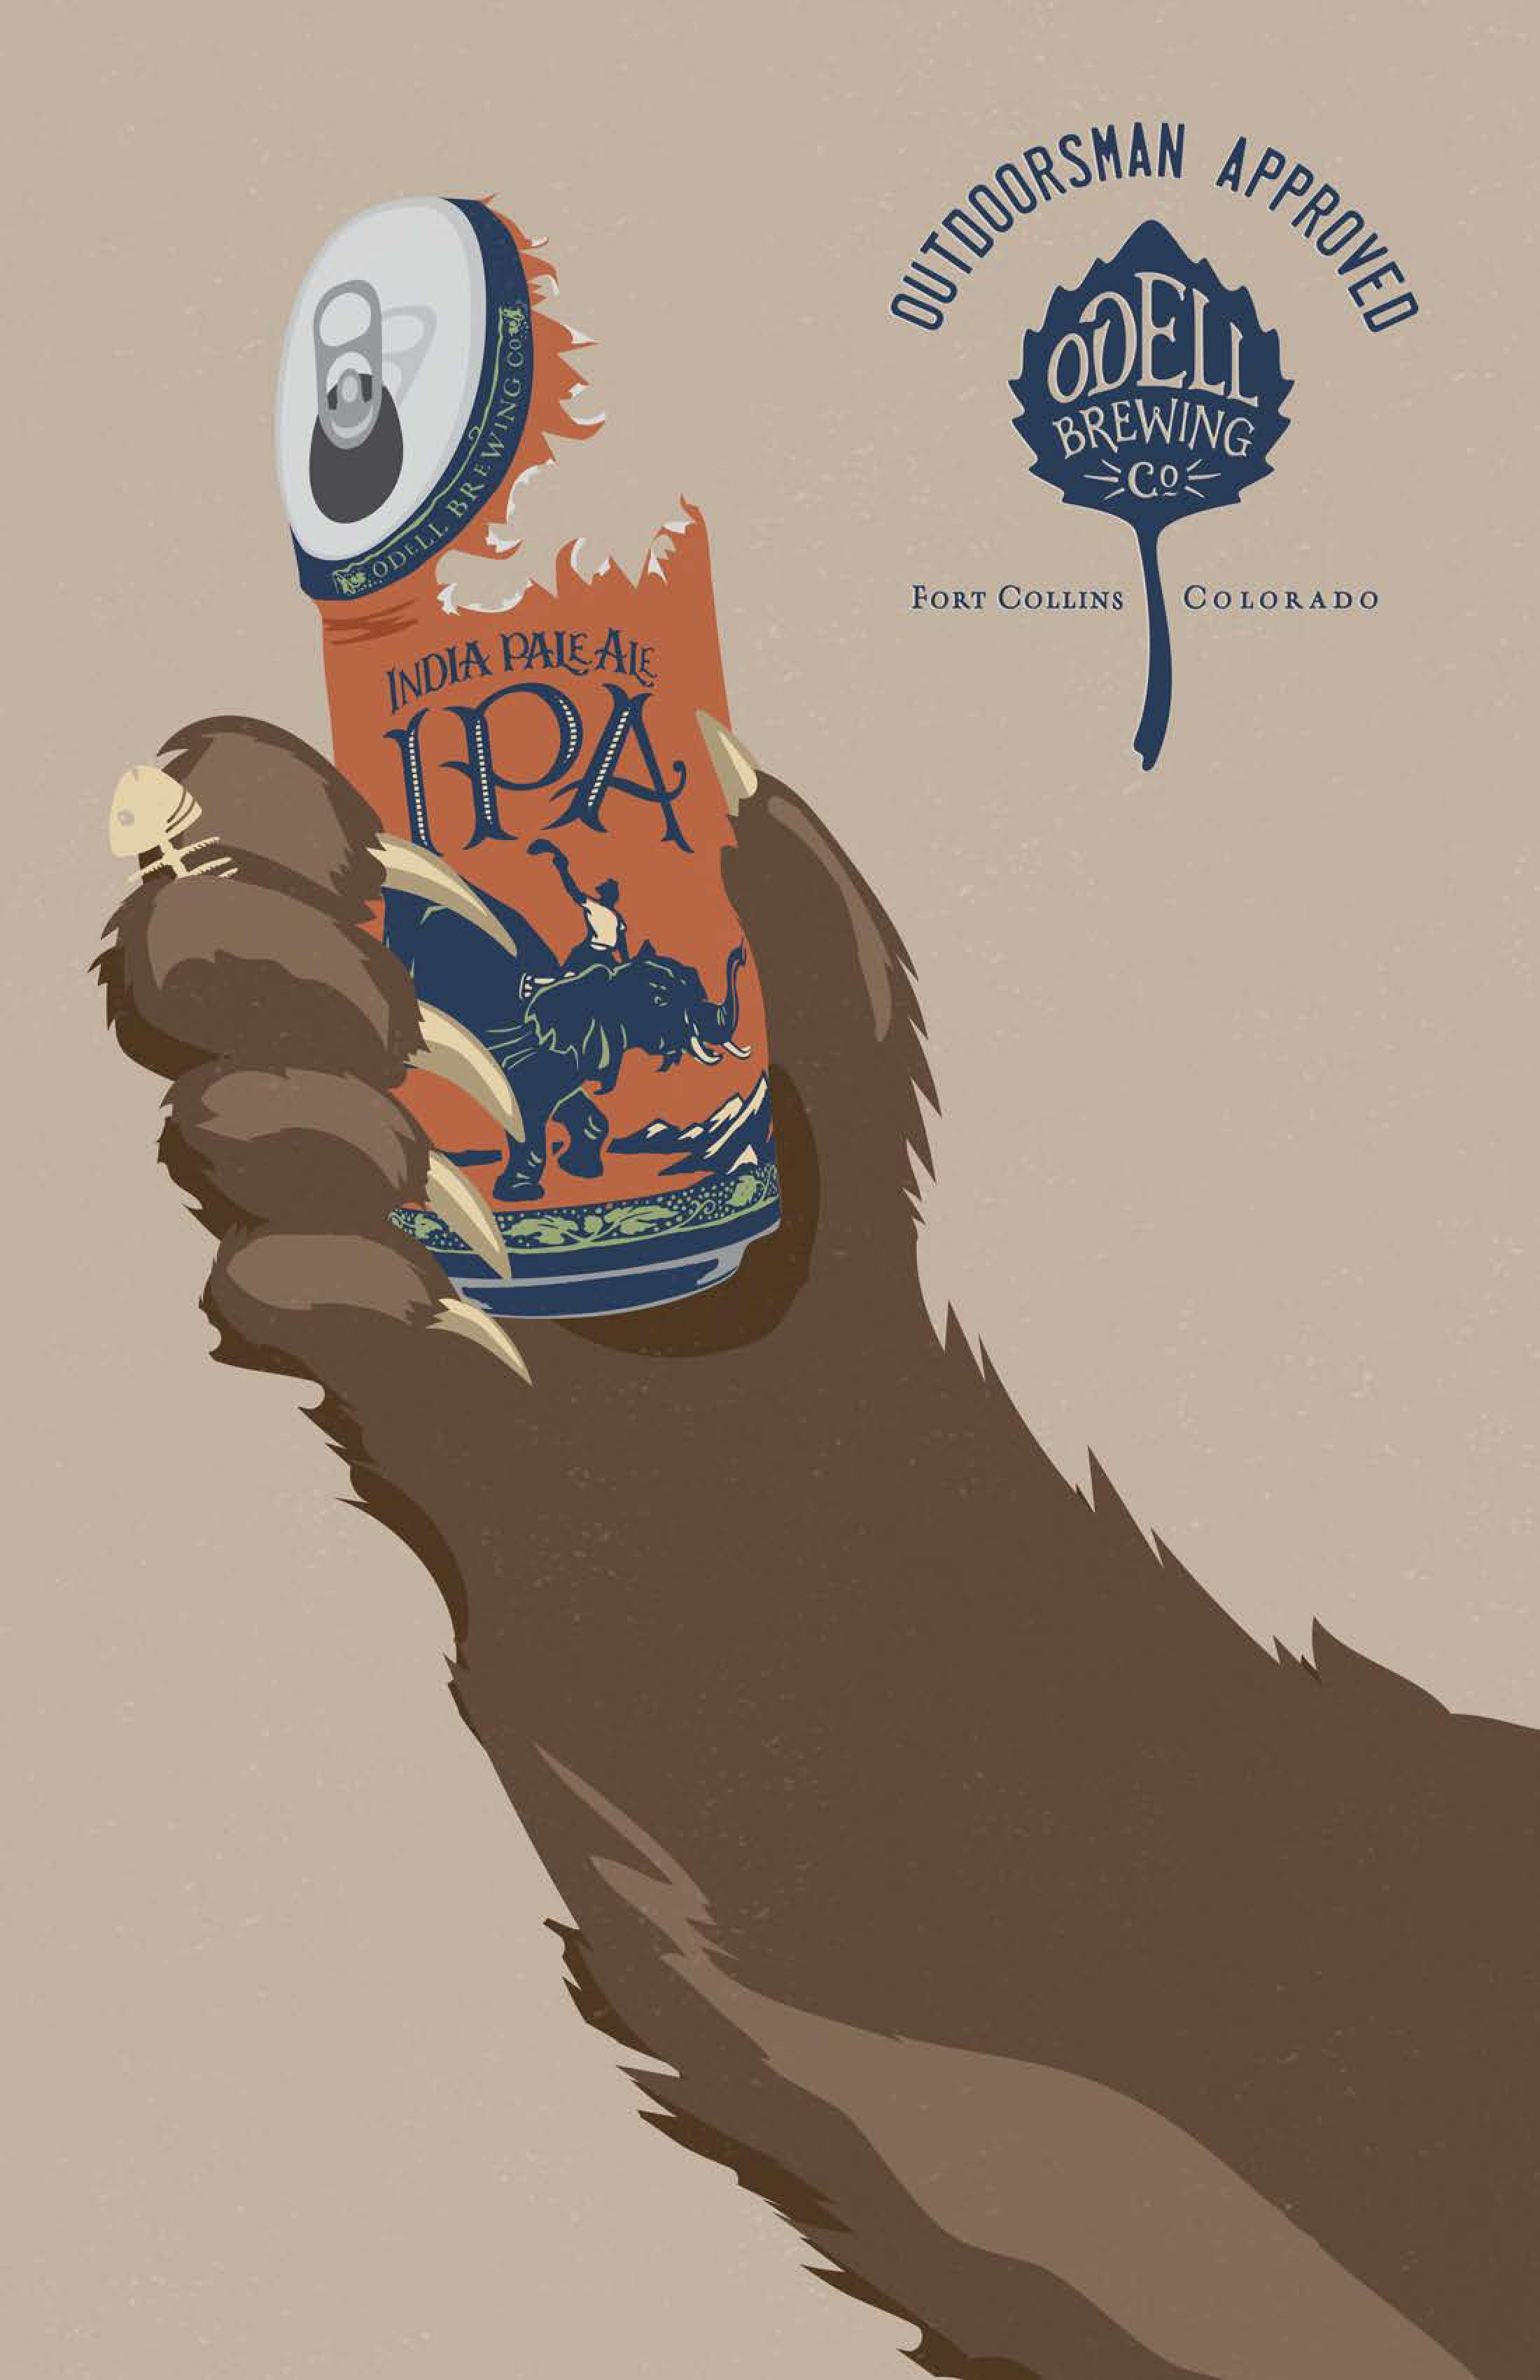 Odell Brewing Co Print Ad - Odell IPA Day - Outdoorsman